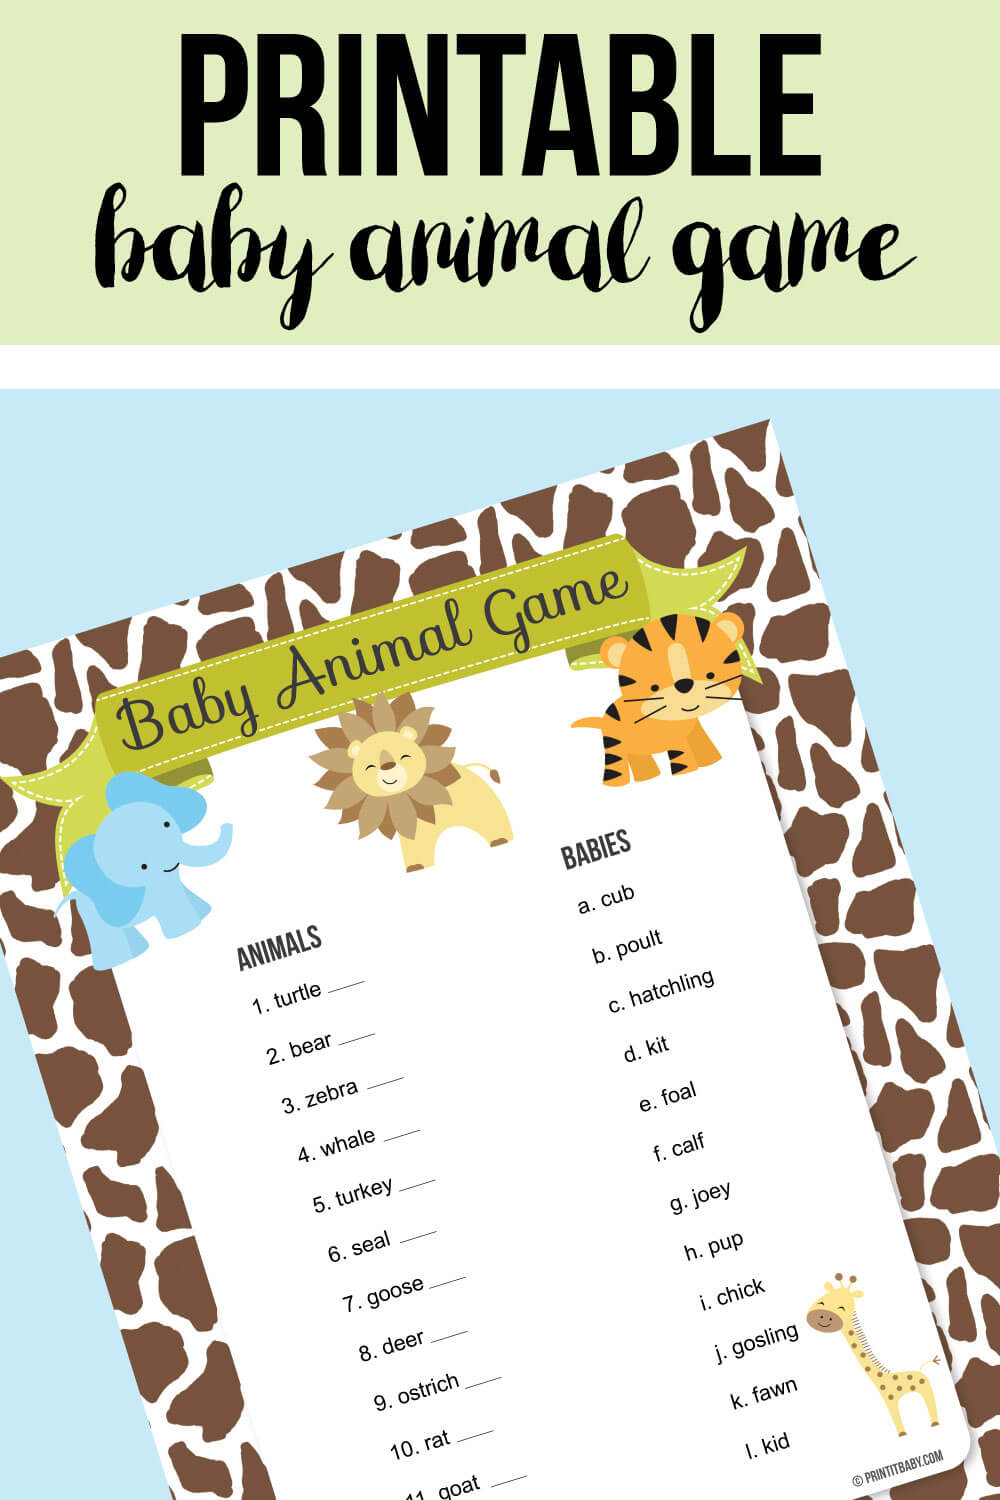 image of adoption baby shower games